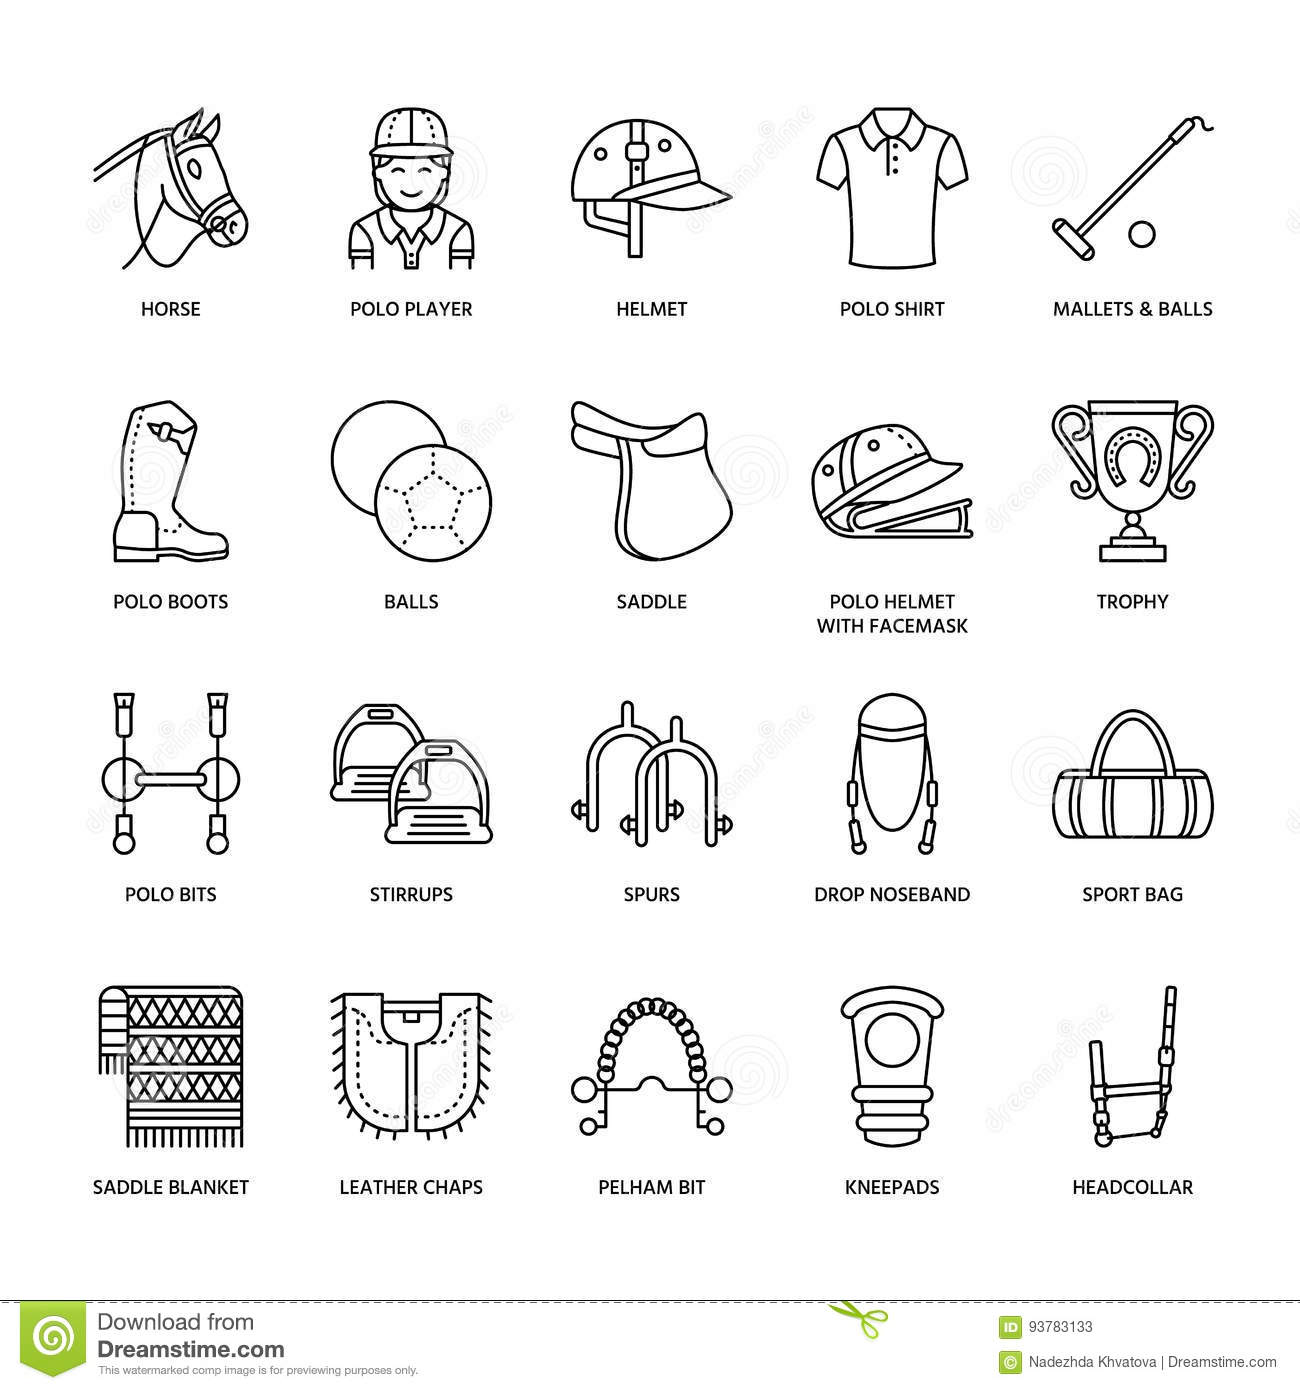 Horse Polo Flat Line Icons Vector Illustration Of Horses